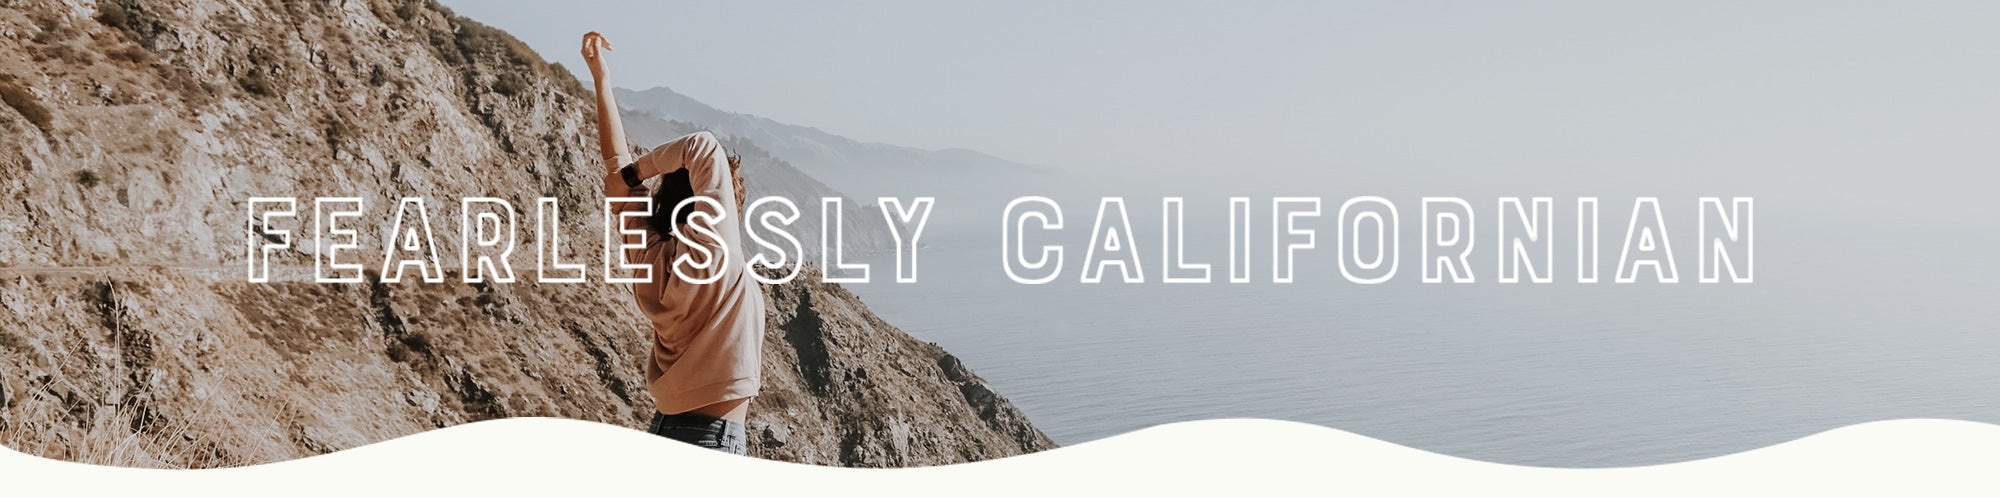 Fearlessly Californian - woman stretching in the mountains overlooking the sea